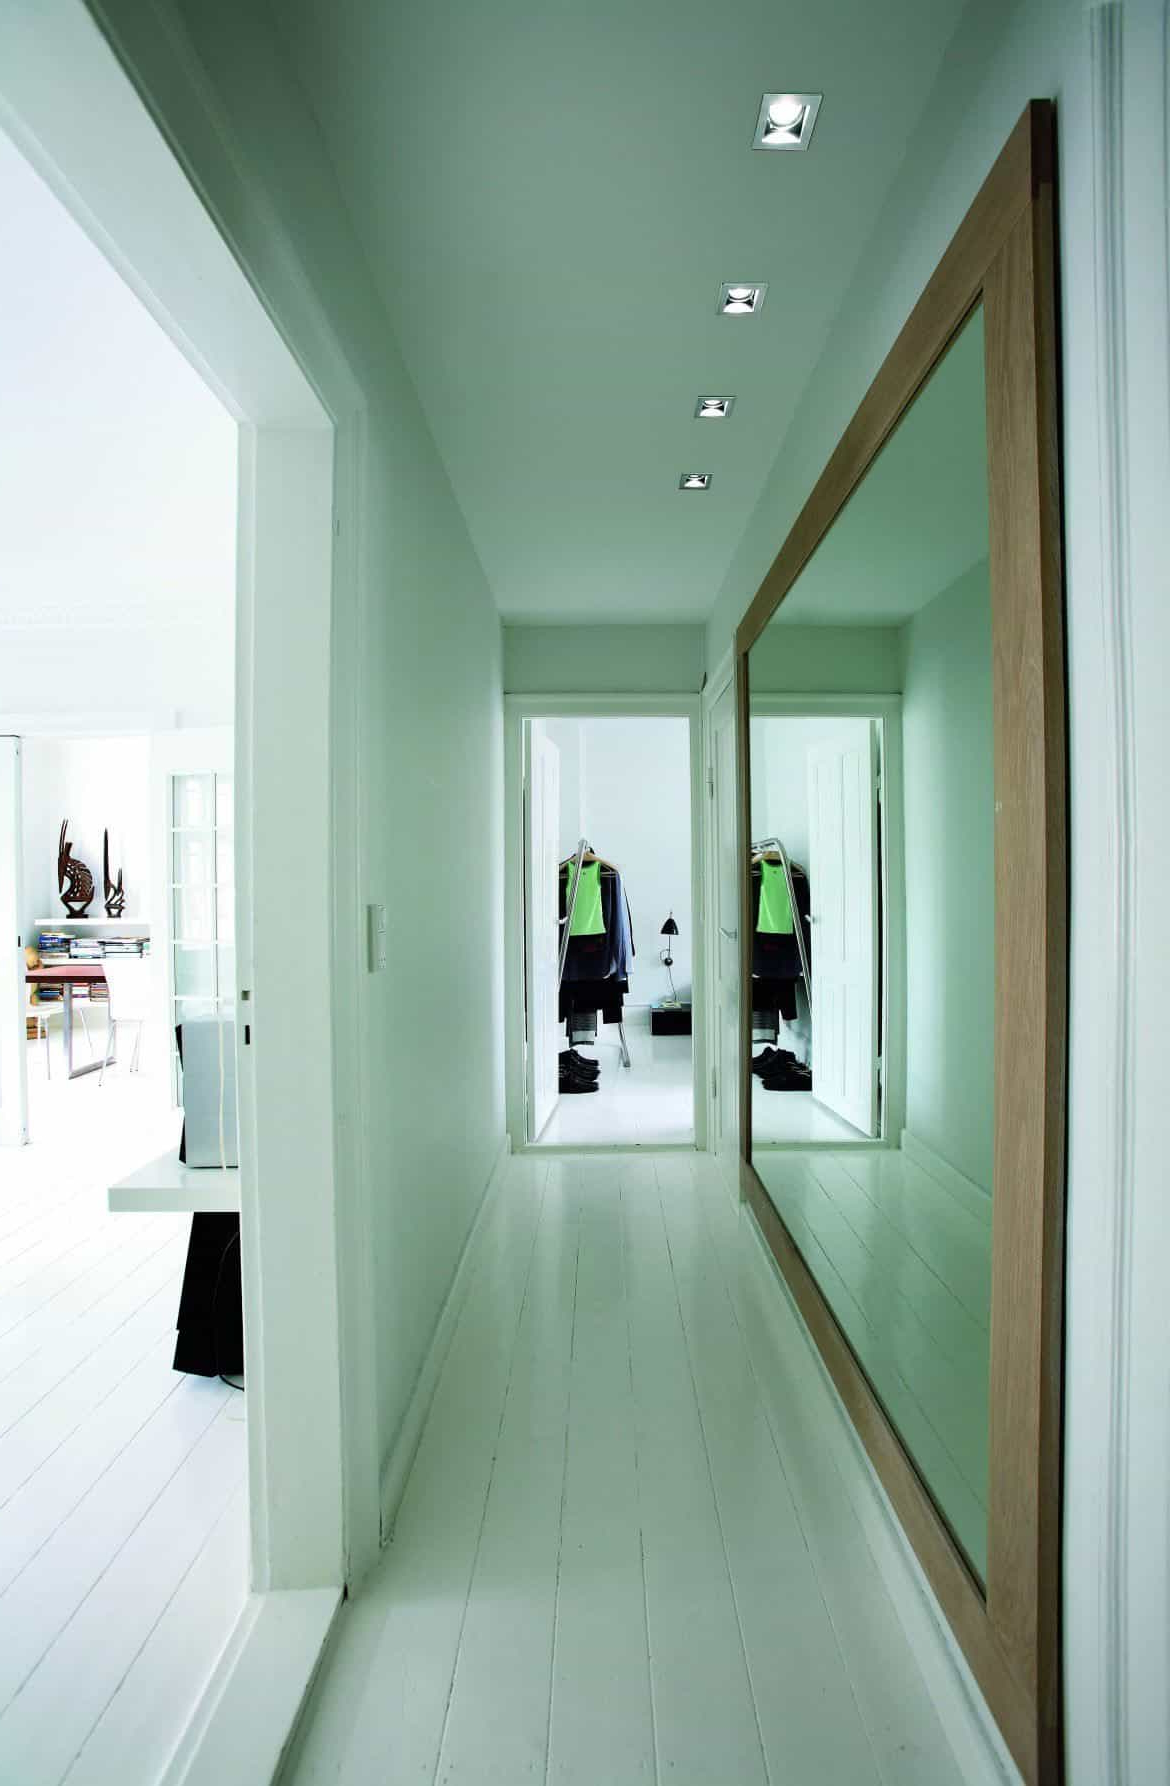 Large Framed Wall Mirrors With Regard To Preferred Hallway With Large Framed Wall Mirror In White Walls – Hallway (View 17 of 20)